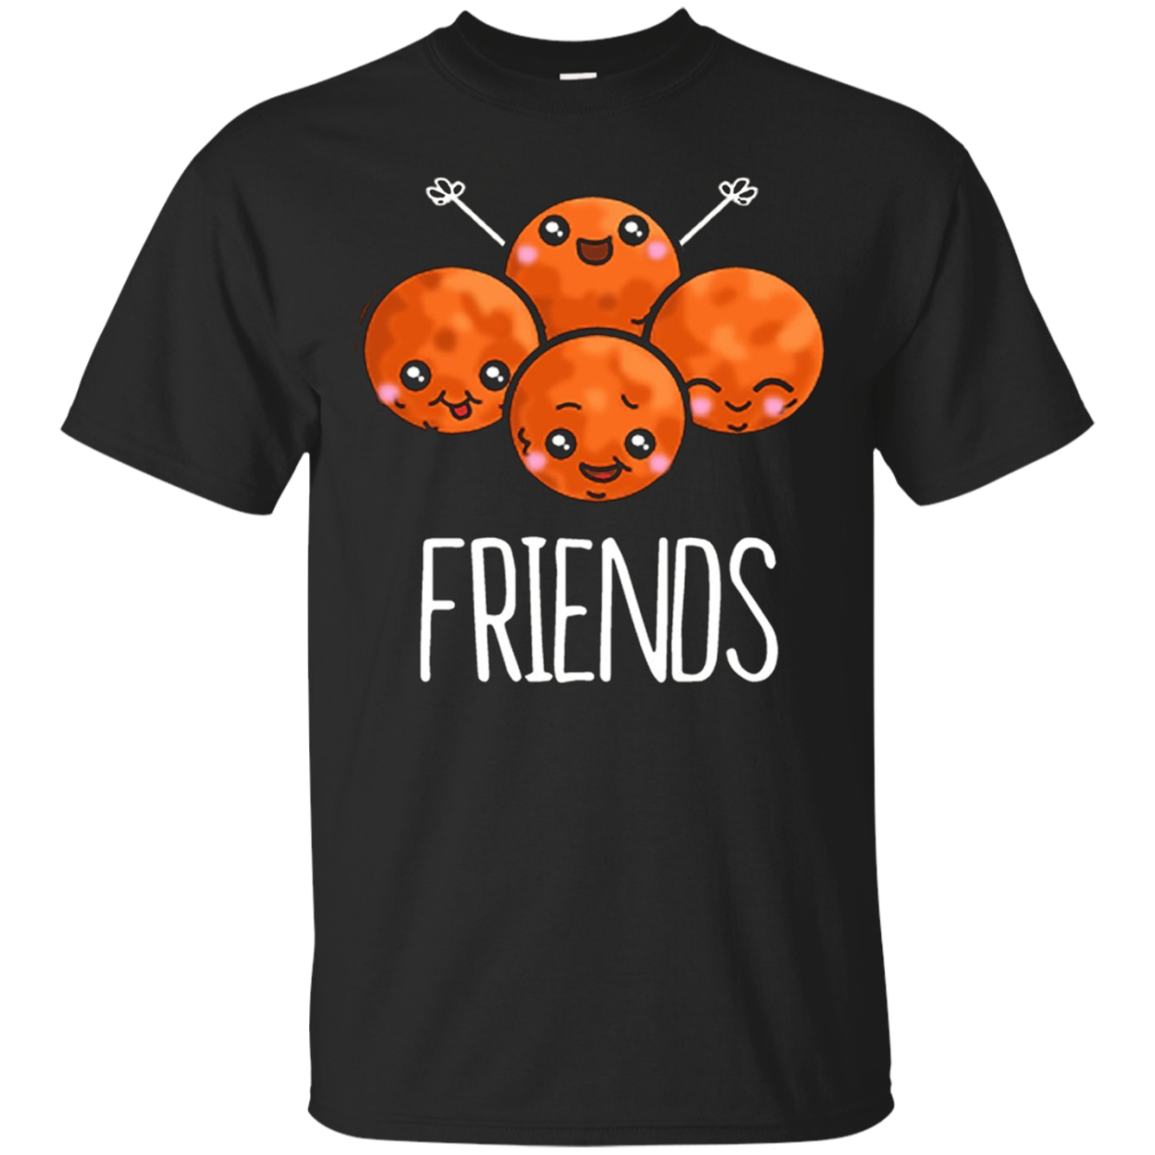 Meatballs And Spaghetti Cute Best Friend Shirts For Women